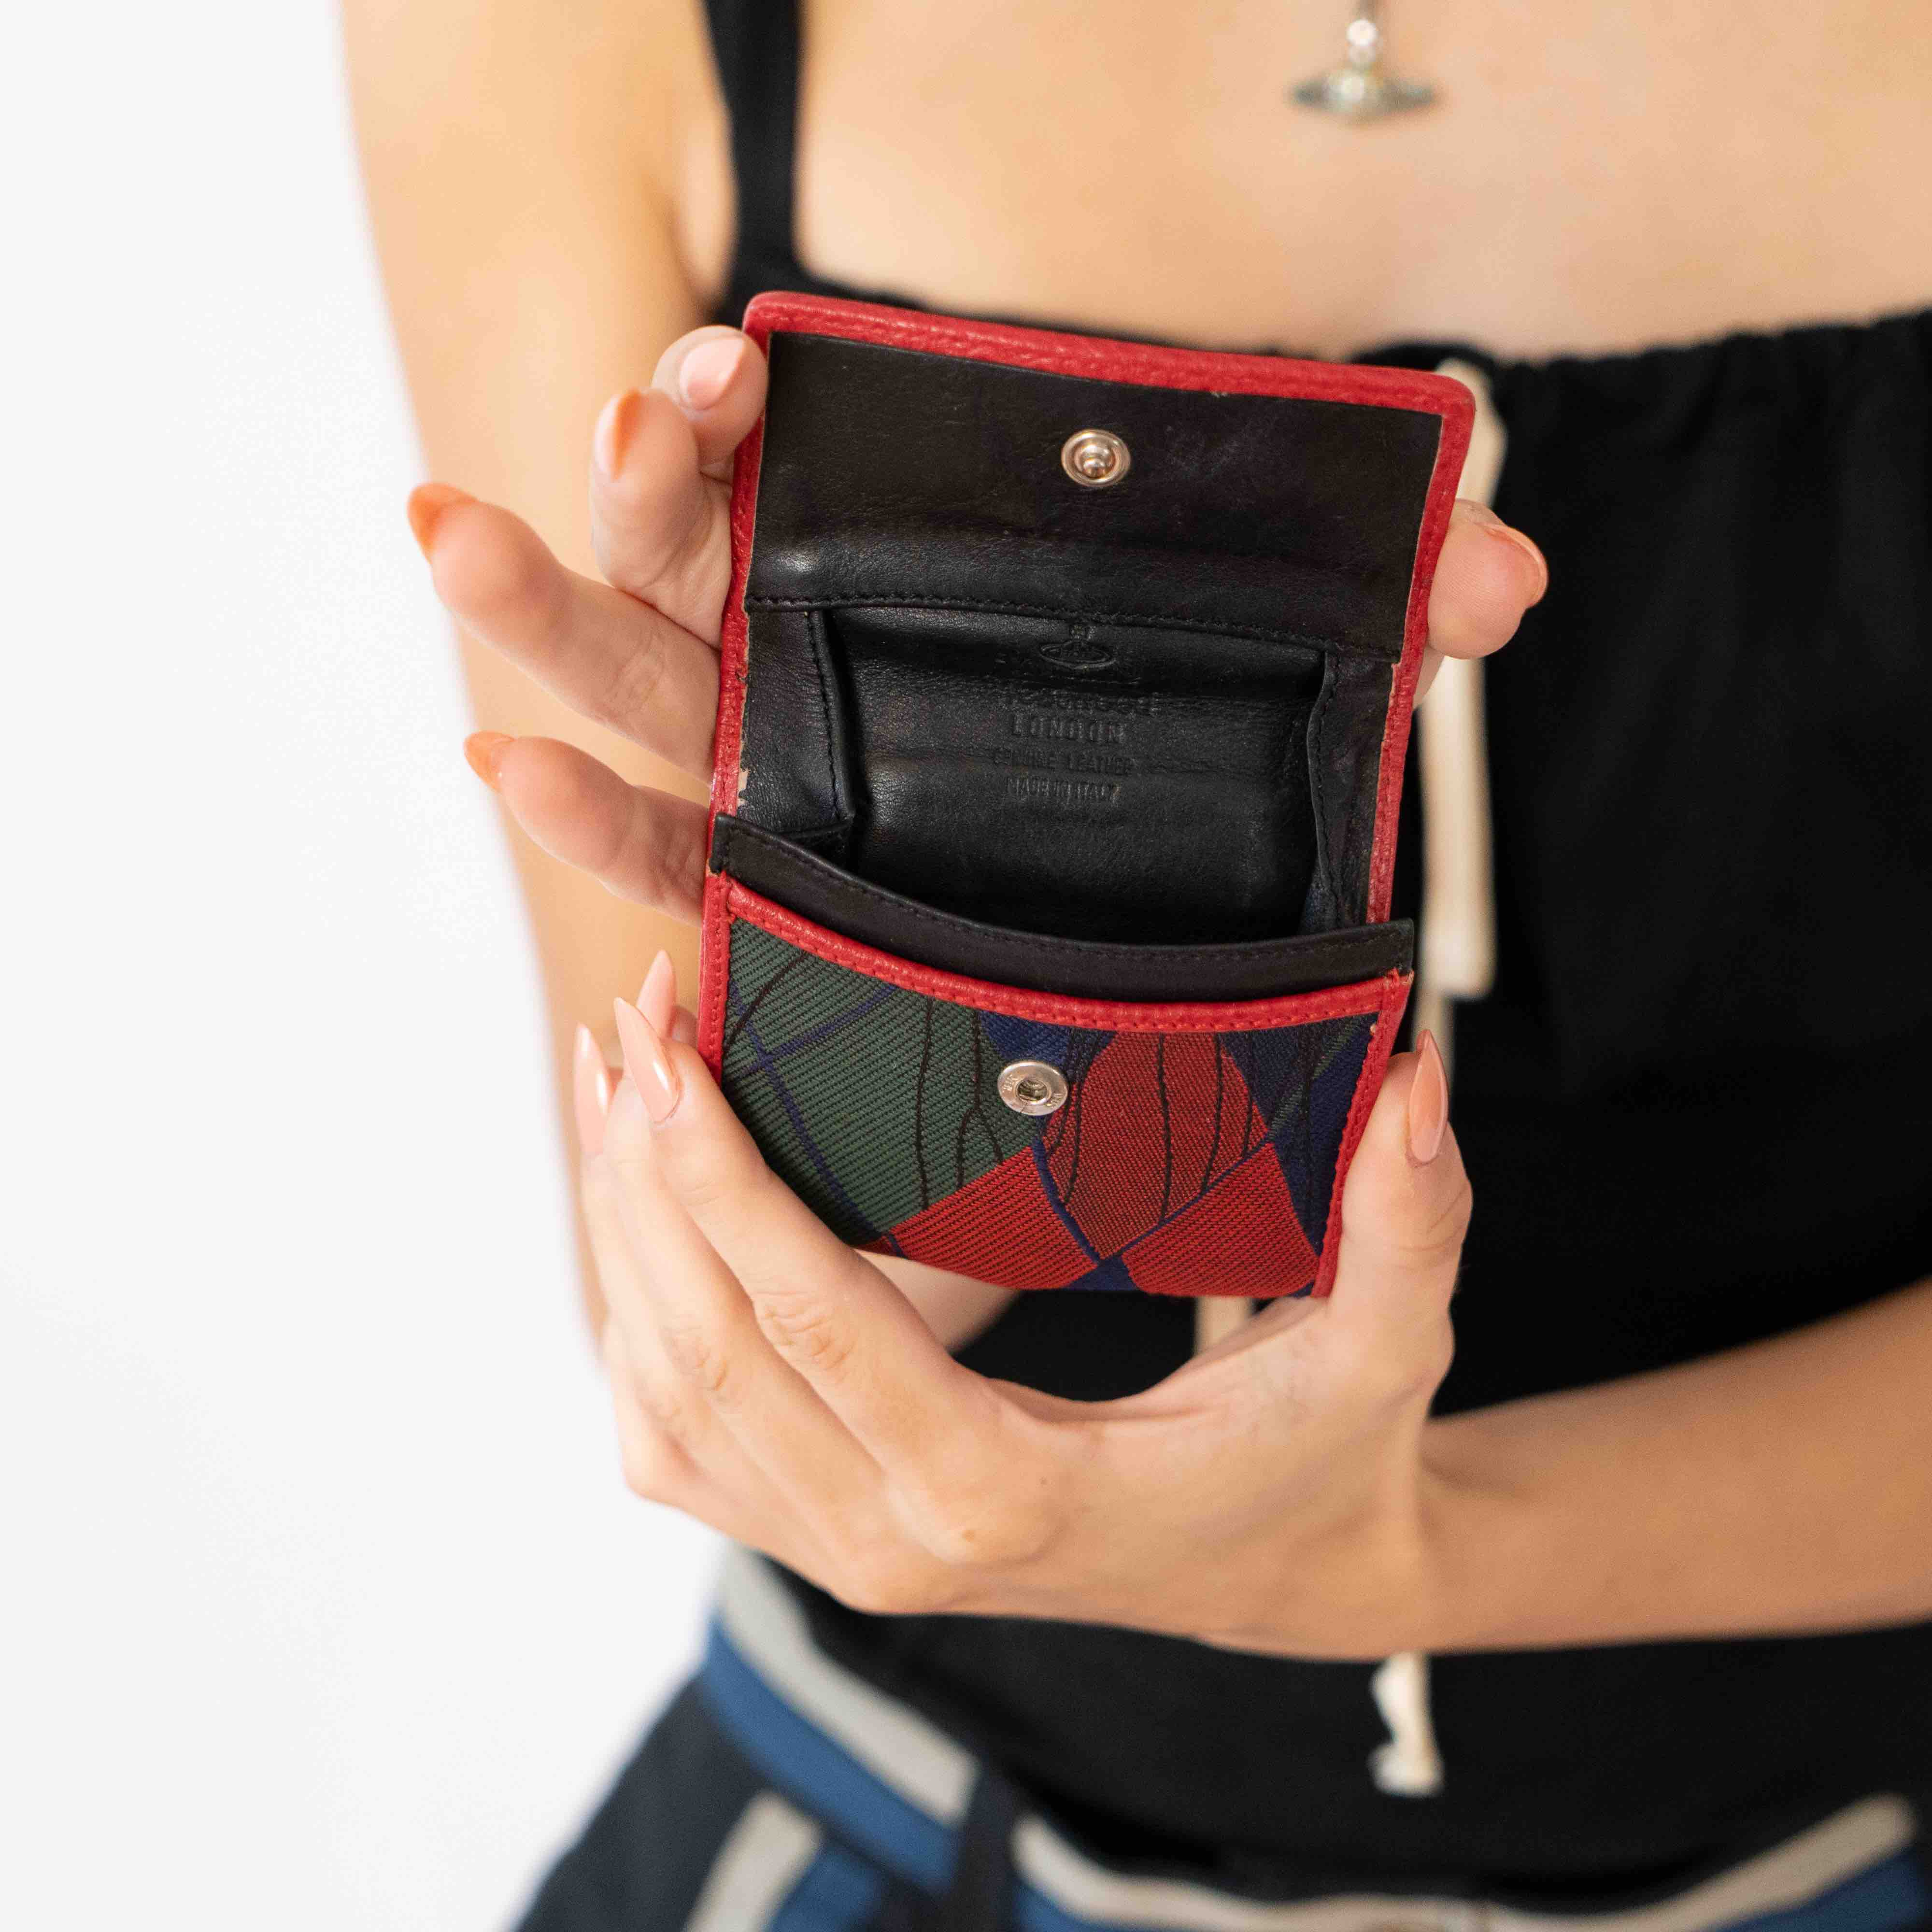 This small little coin purse is not only great for your extra change, but it's also an amazing hiding place for all your secret bad habits. That's all I'll say.